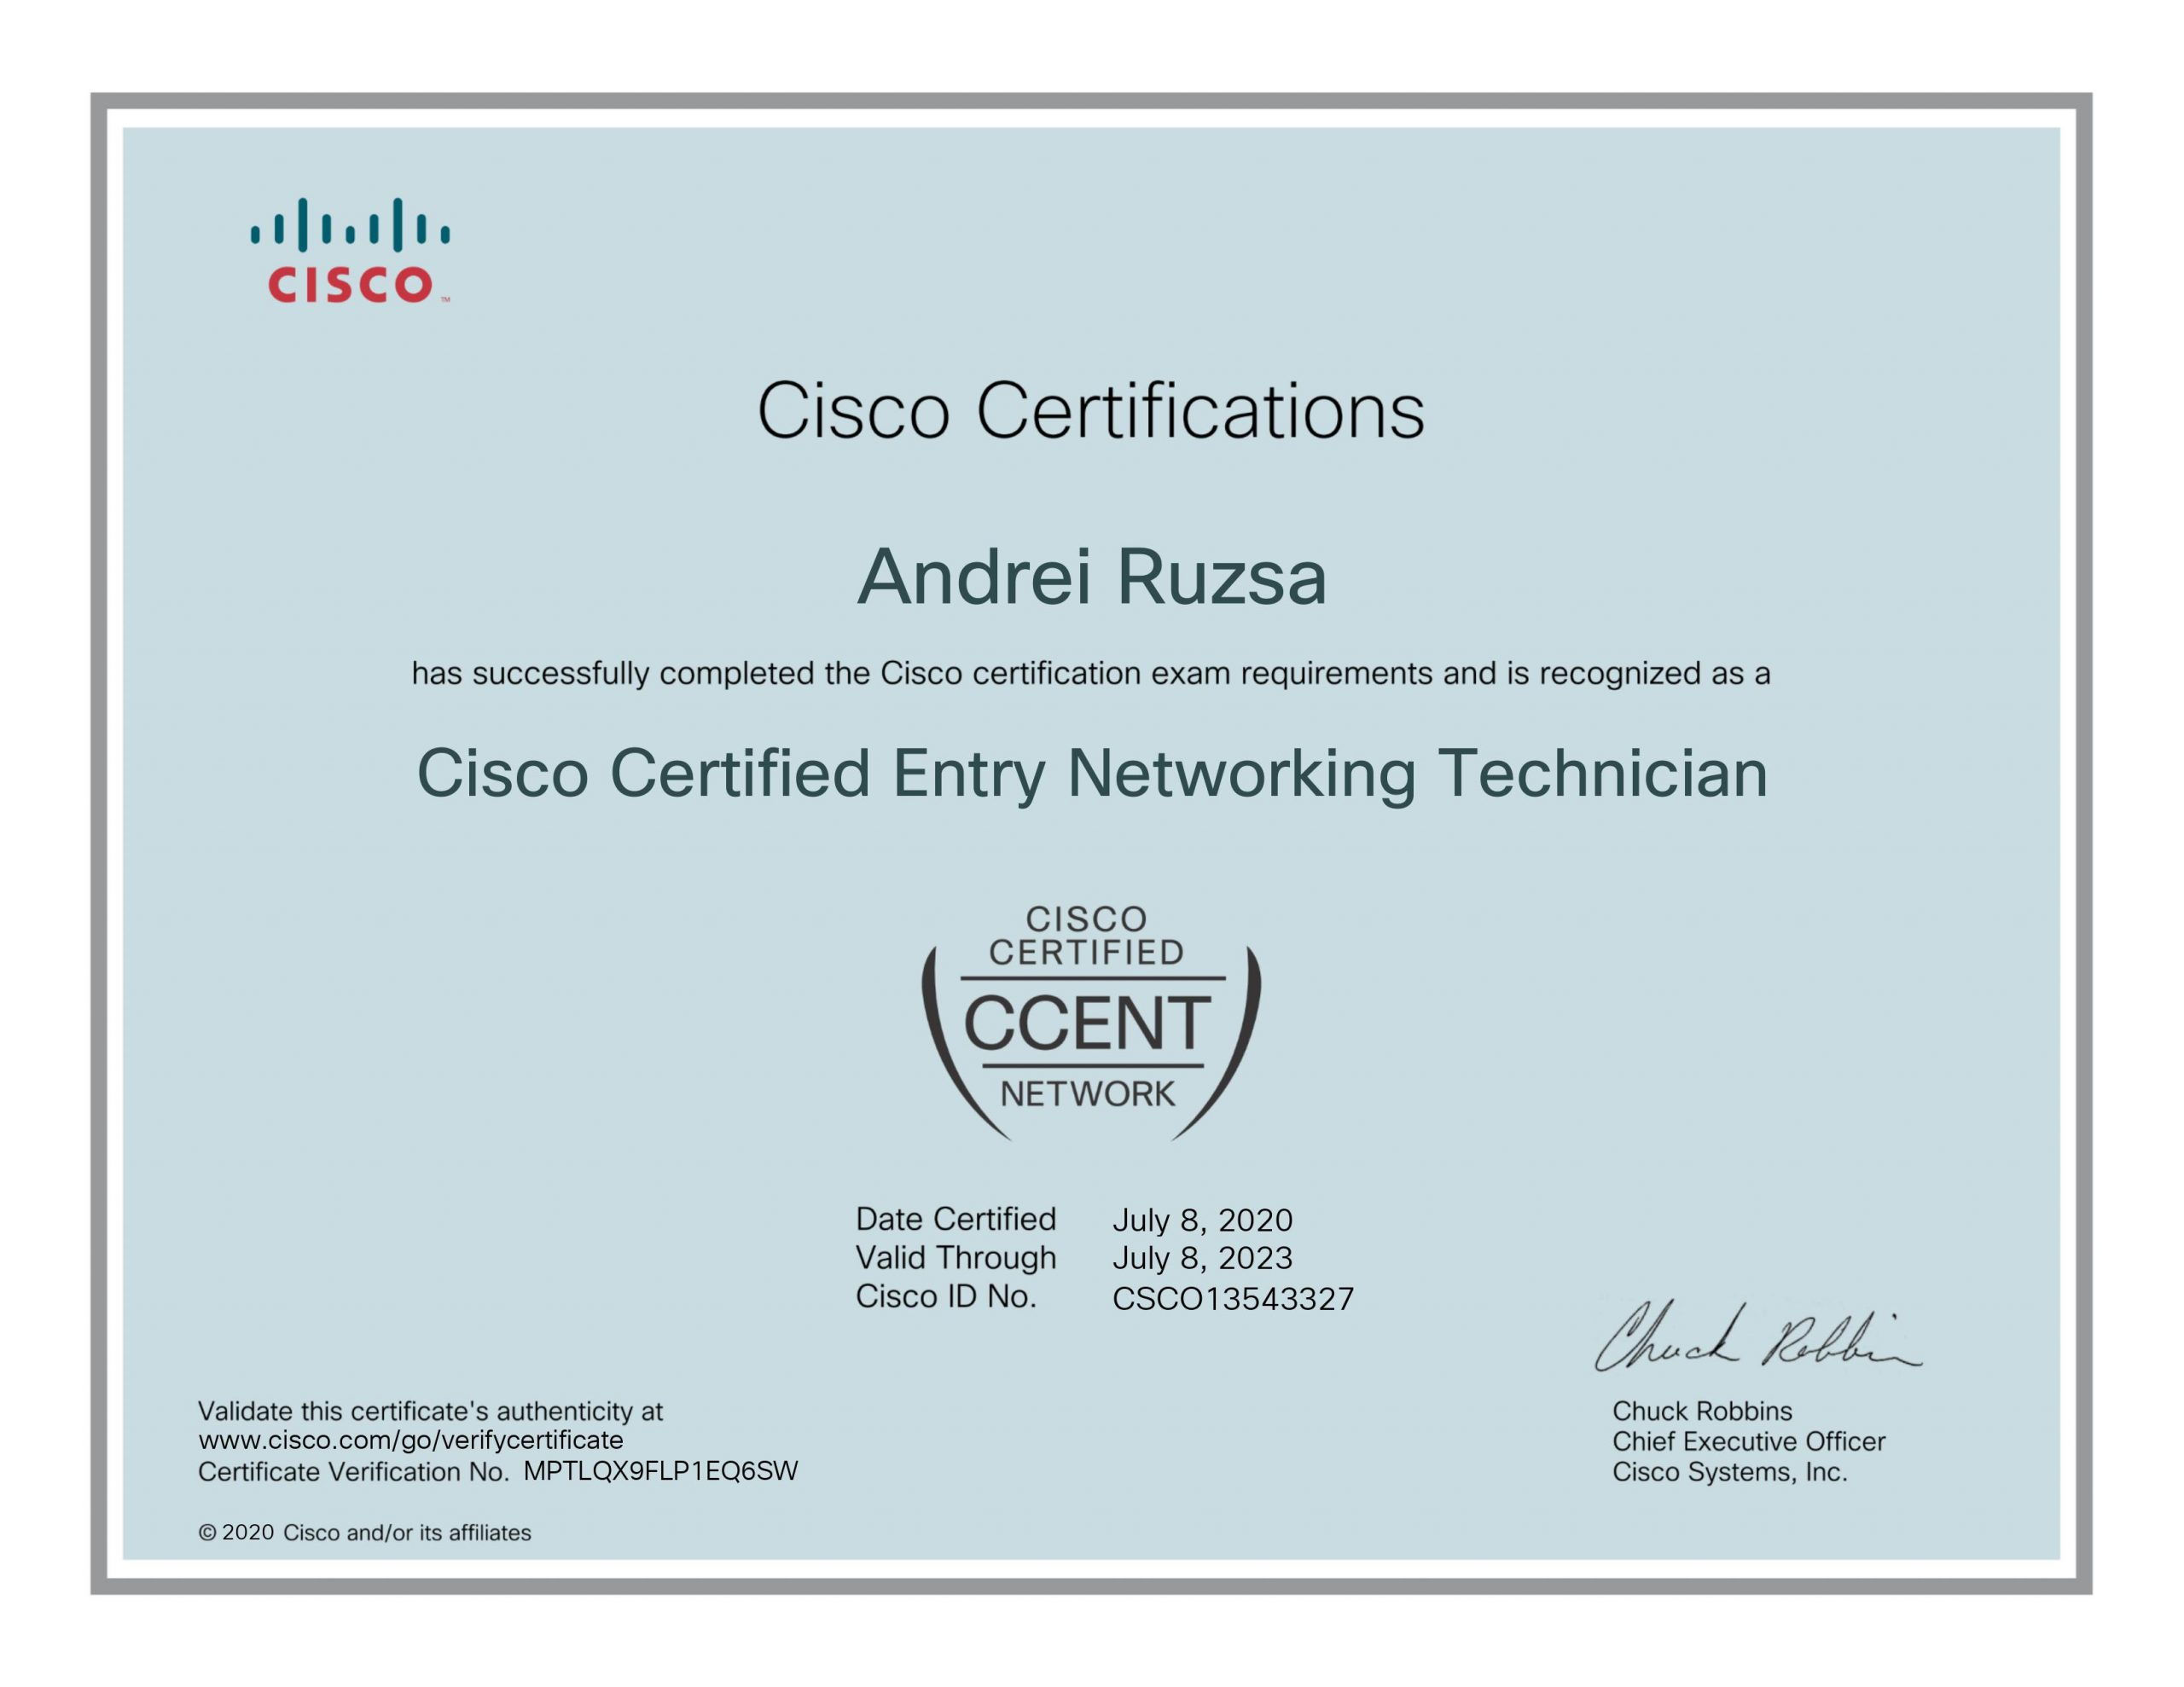 efectRO-Cisco_Certified_Entry_Networking_Technician_certificate